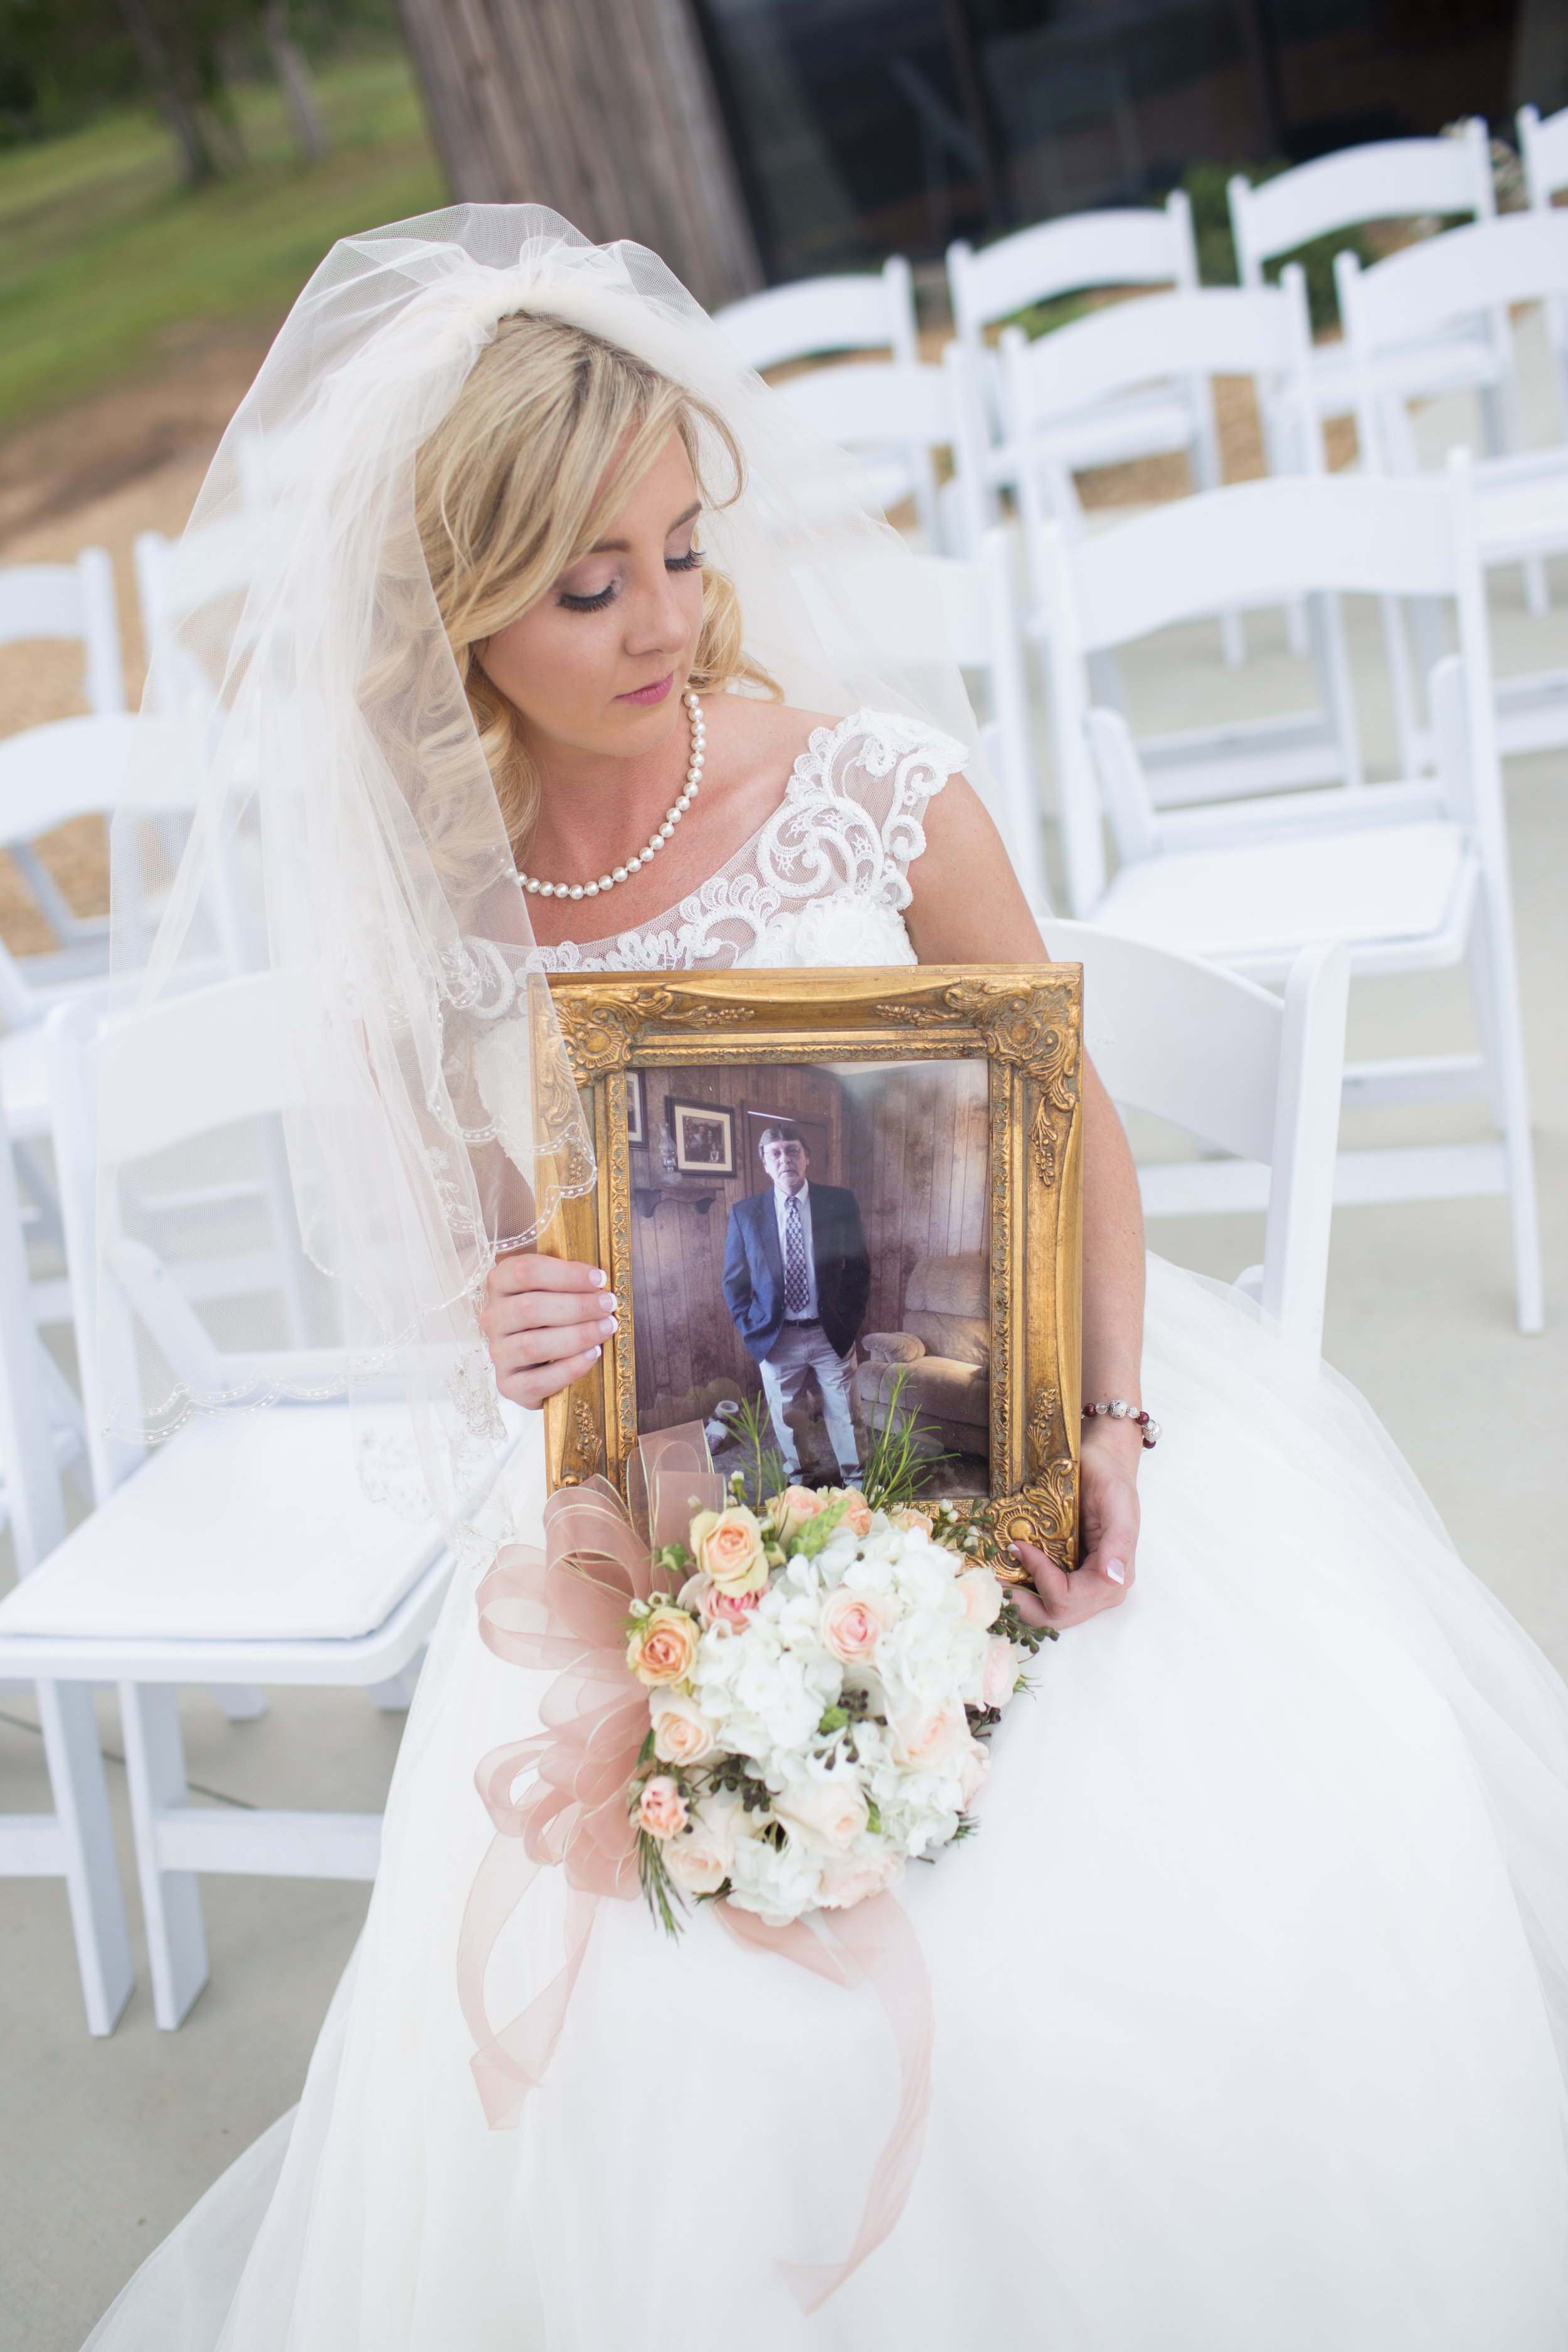 The bride with the picture of her dad.